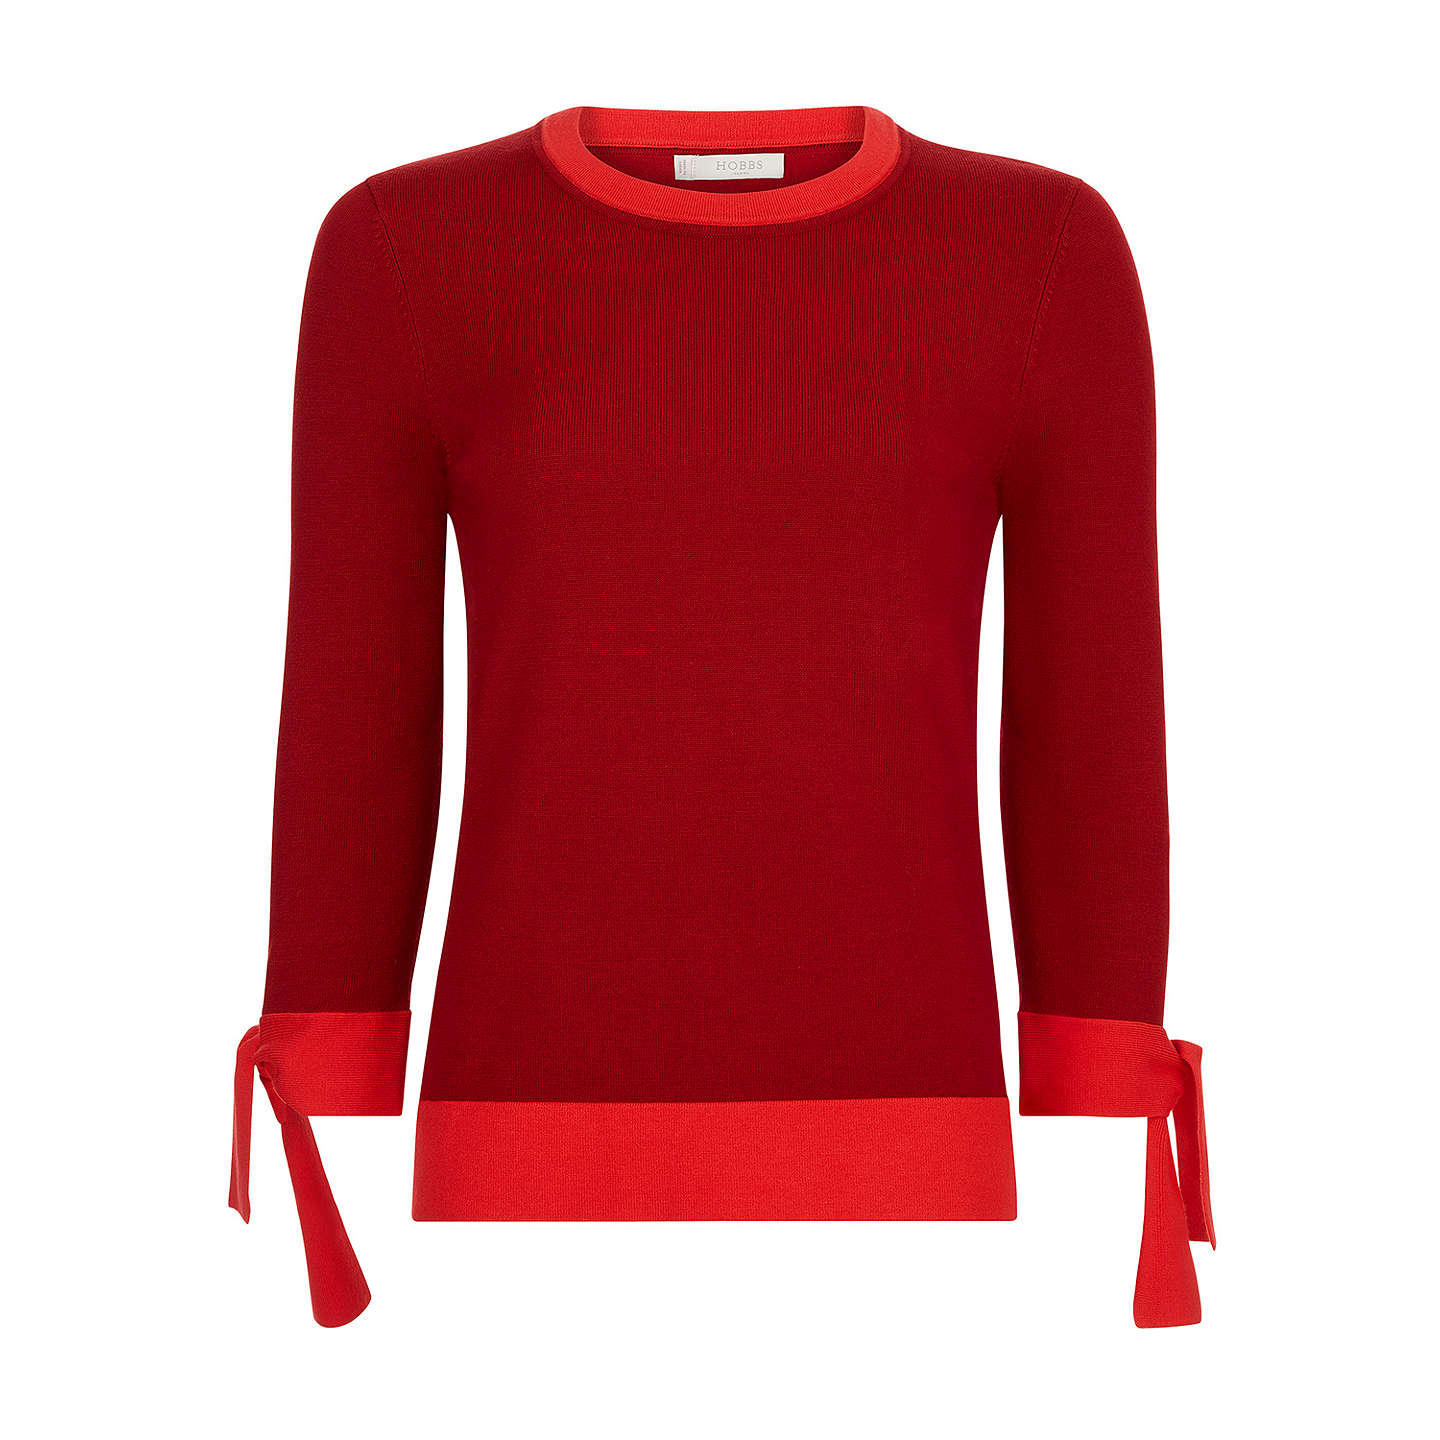 BuyHobbs Kirby Jumper, Red, XS Online at johnlewis.com